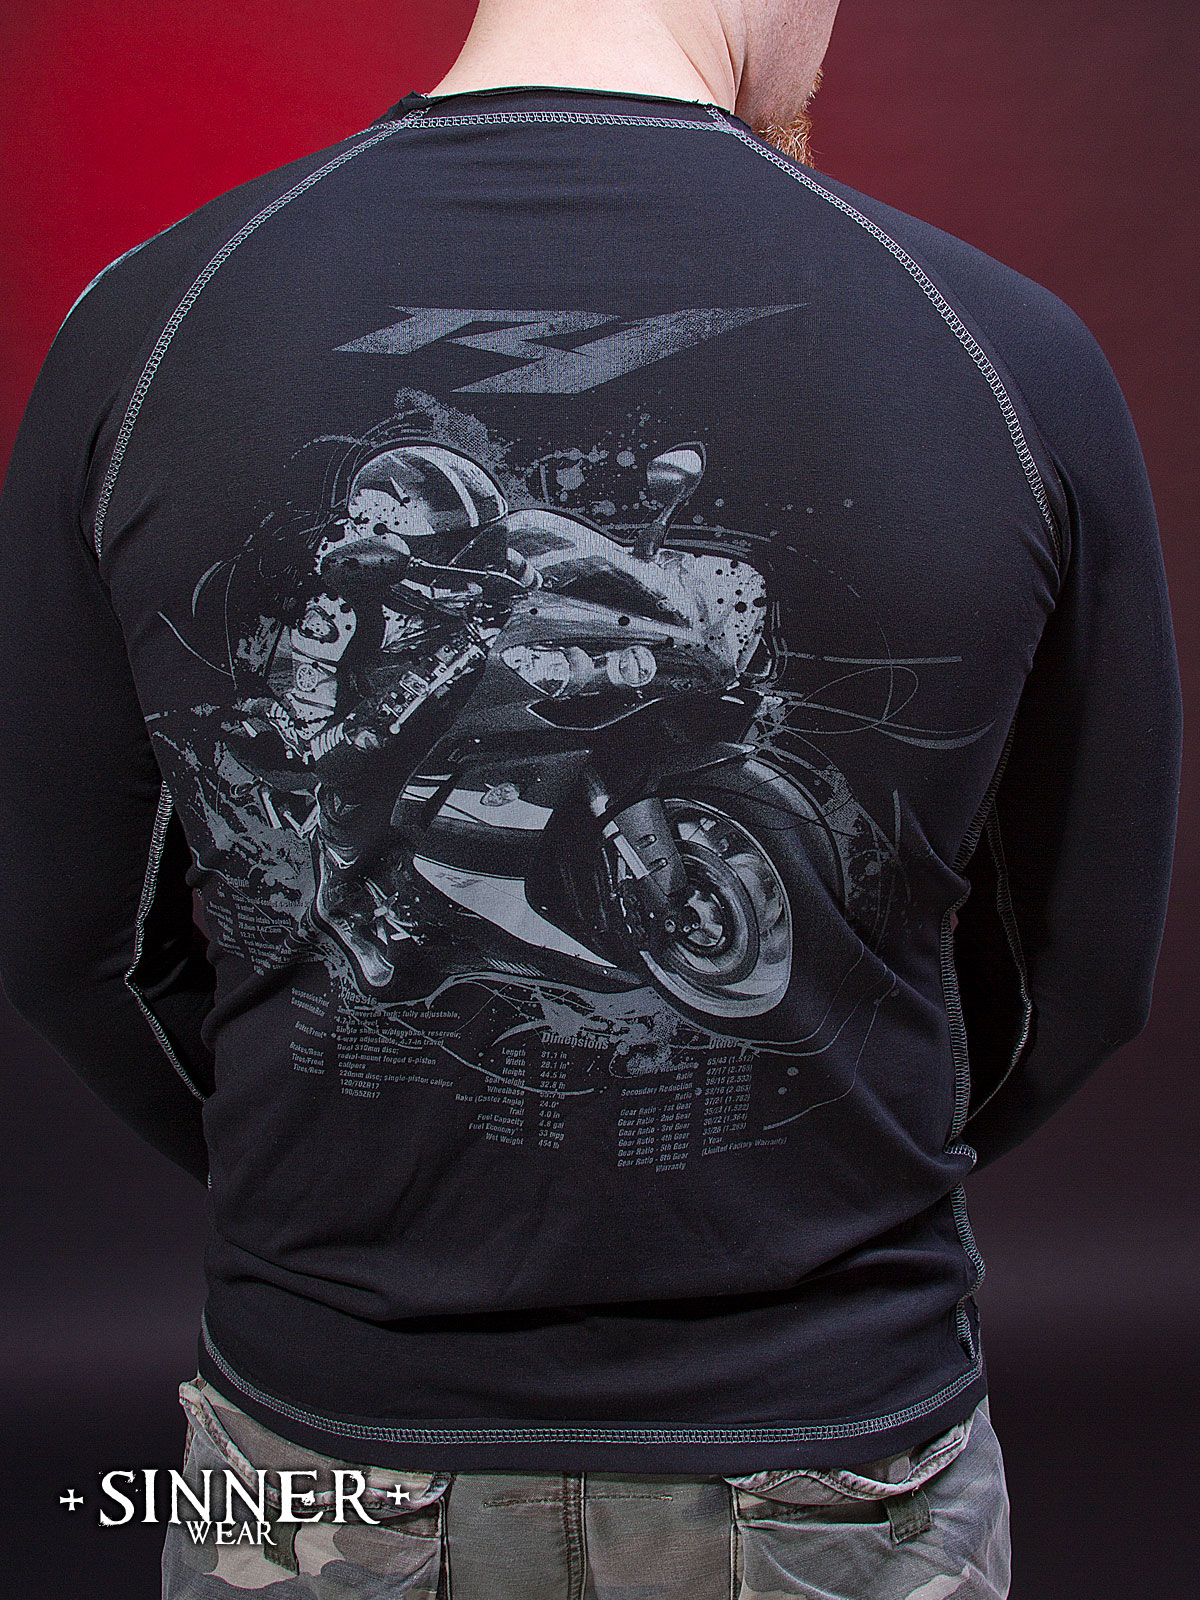 Black yamaha t shirt - Black Yamaha T Shirt 13